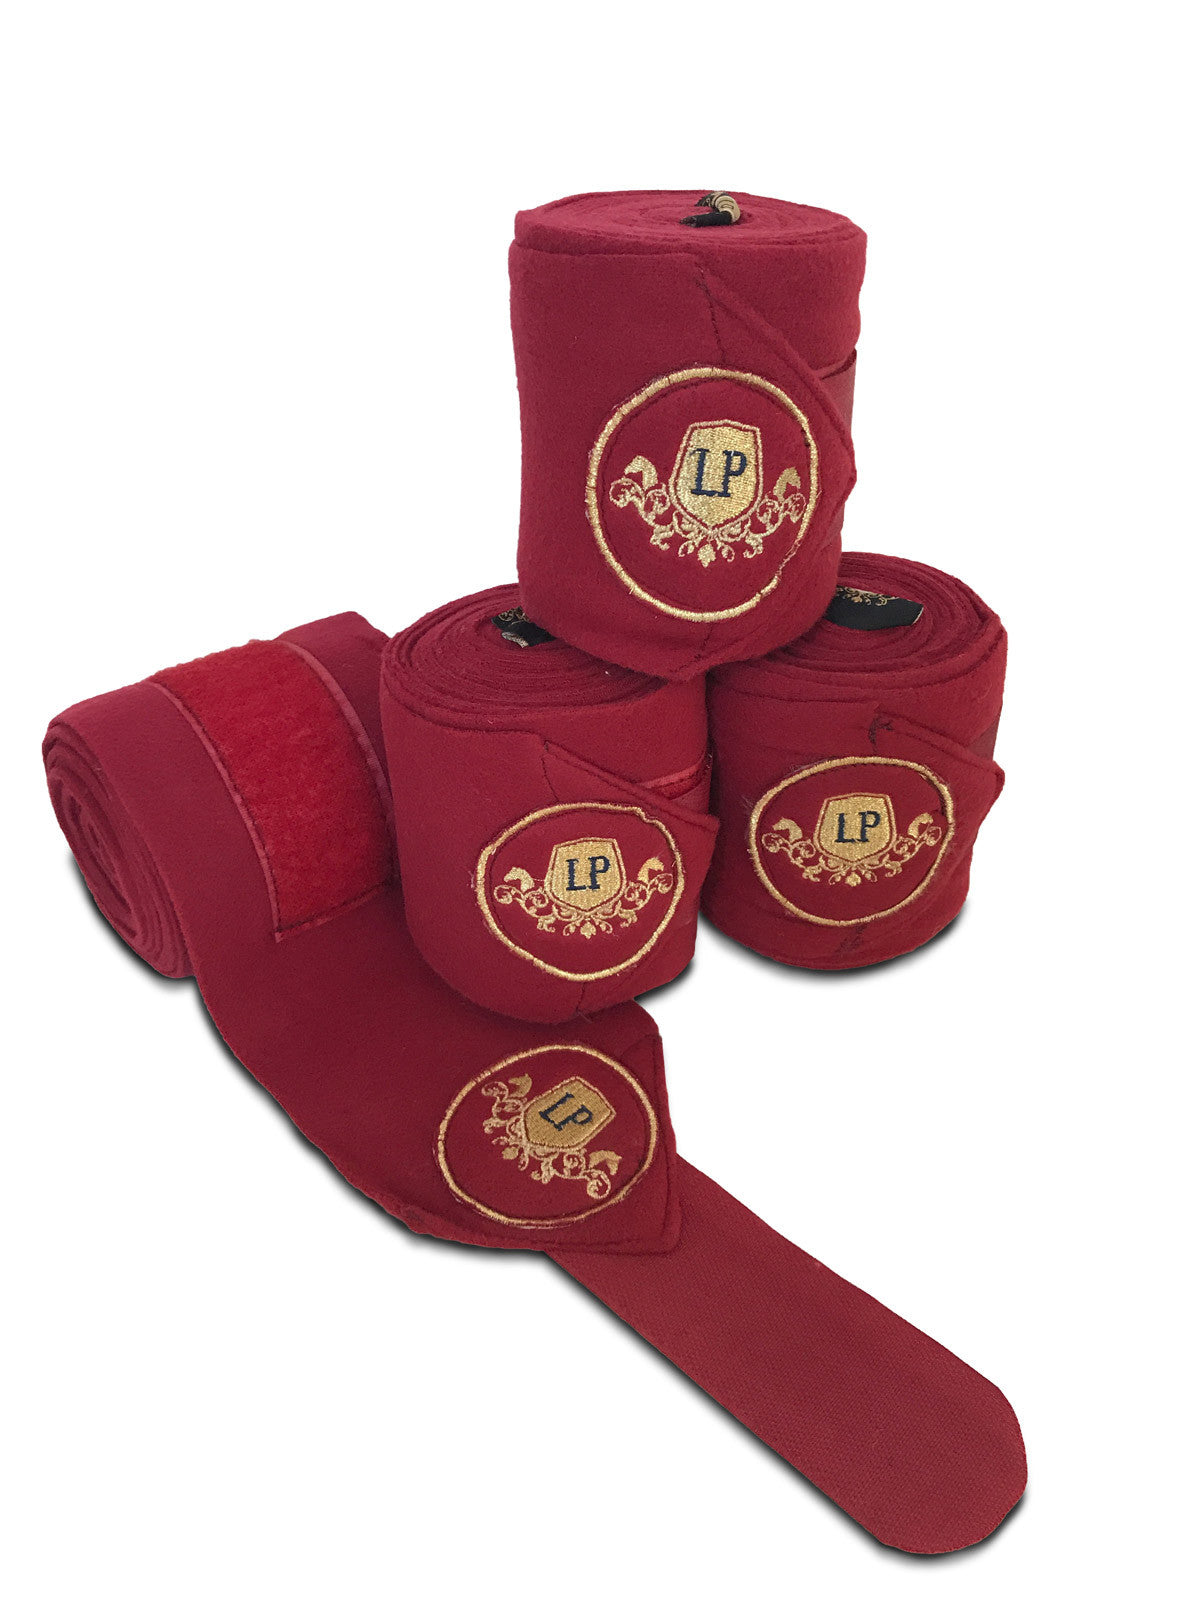 Equestrian Horse Product. Burgundy Fleece Bandages